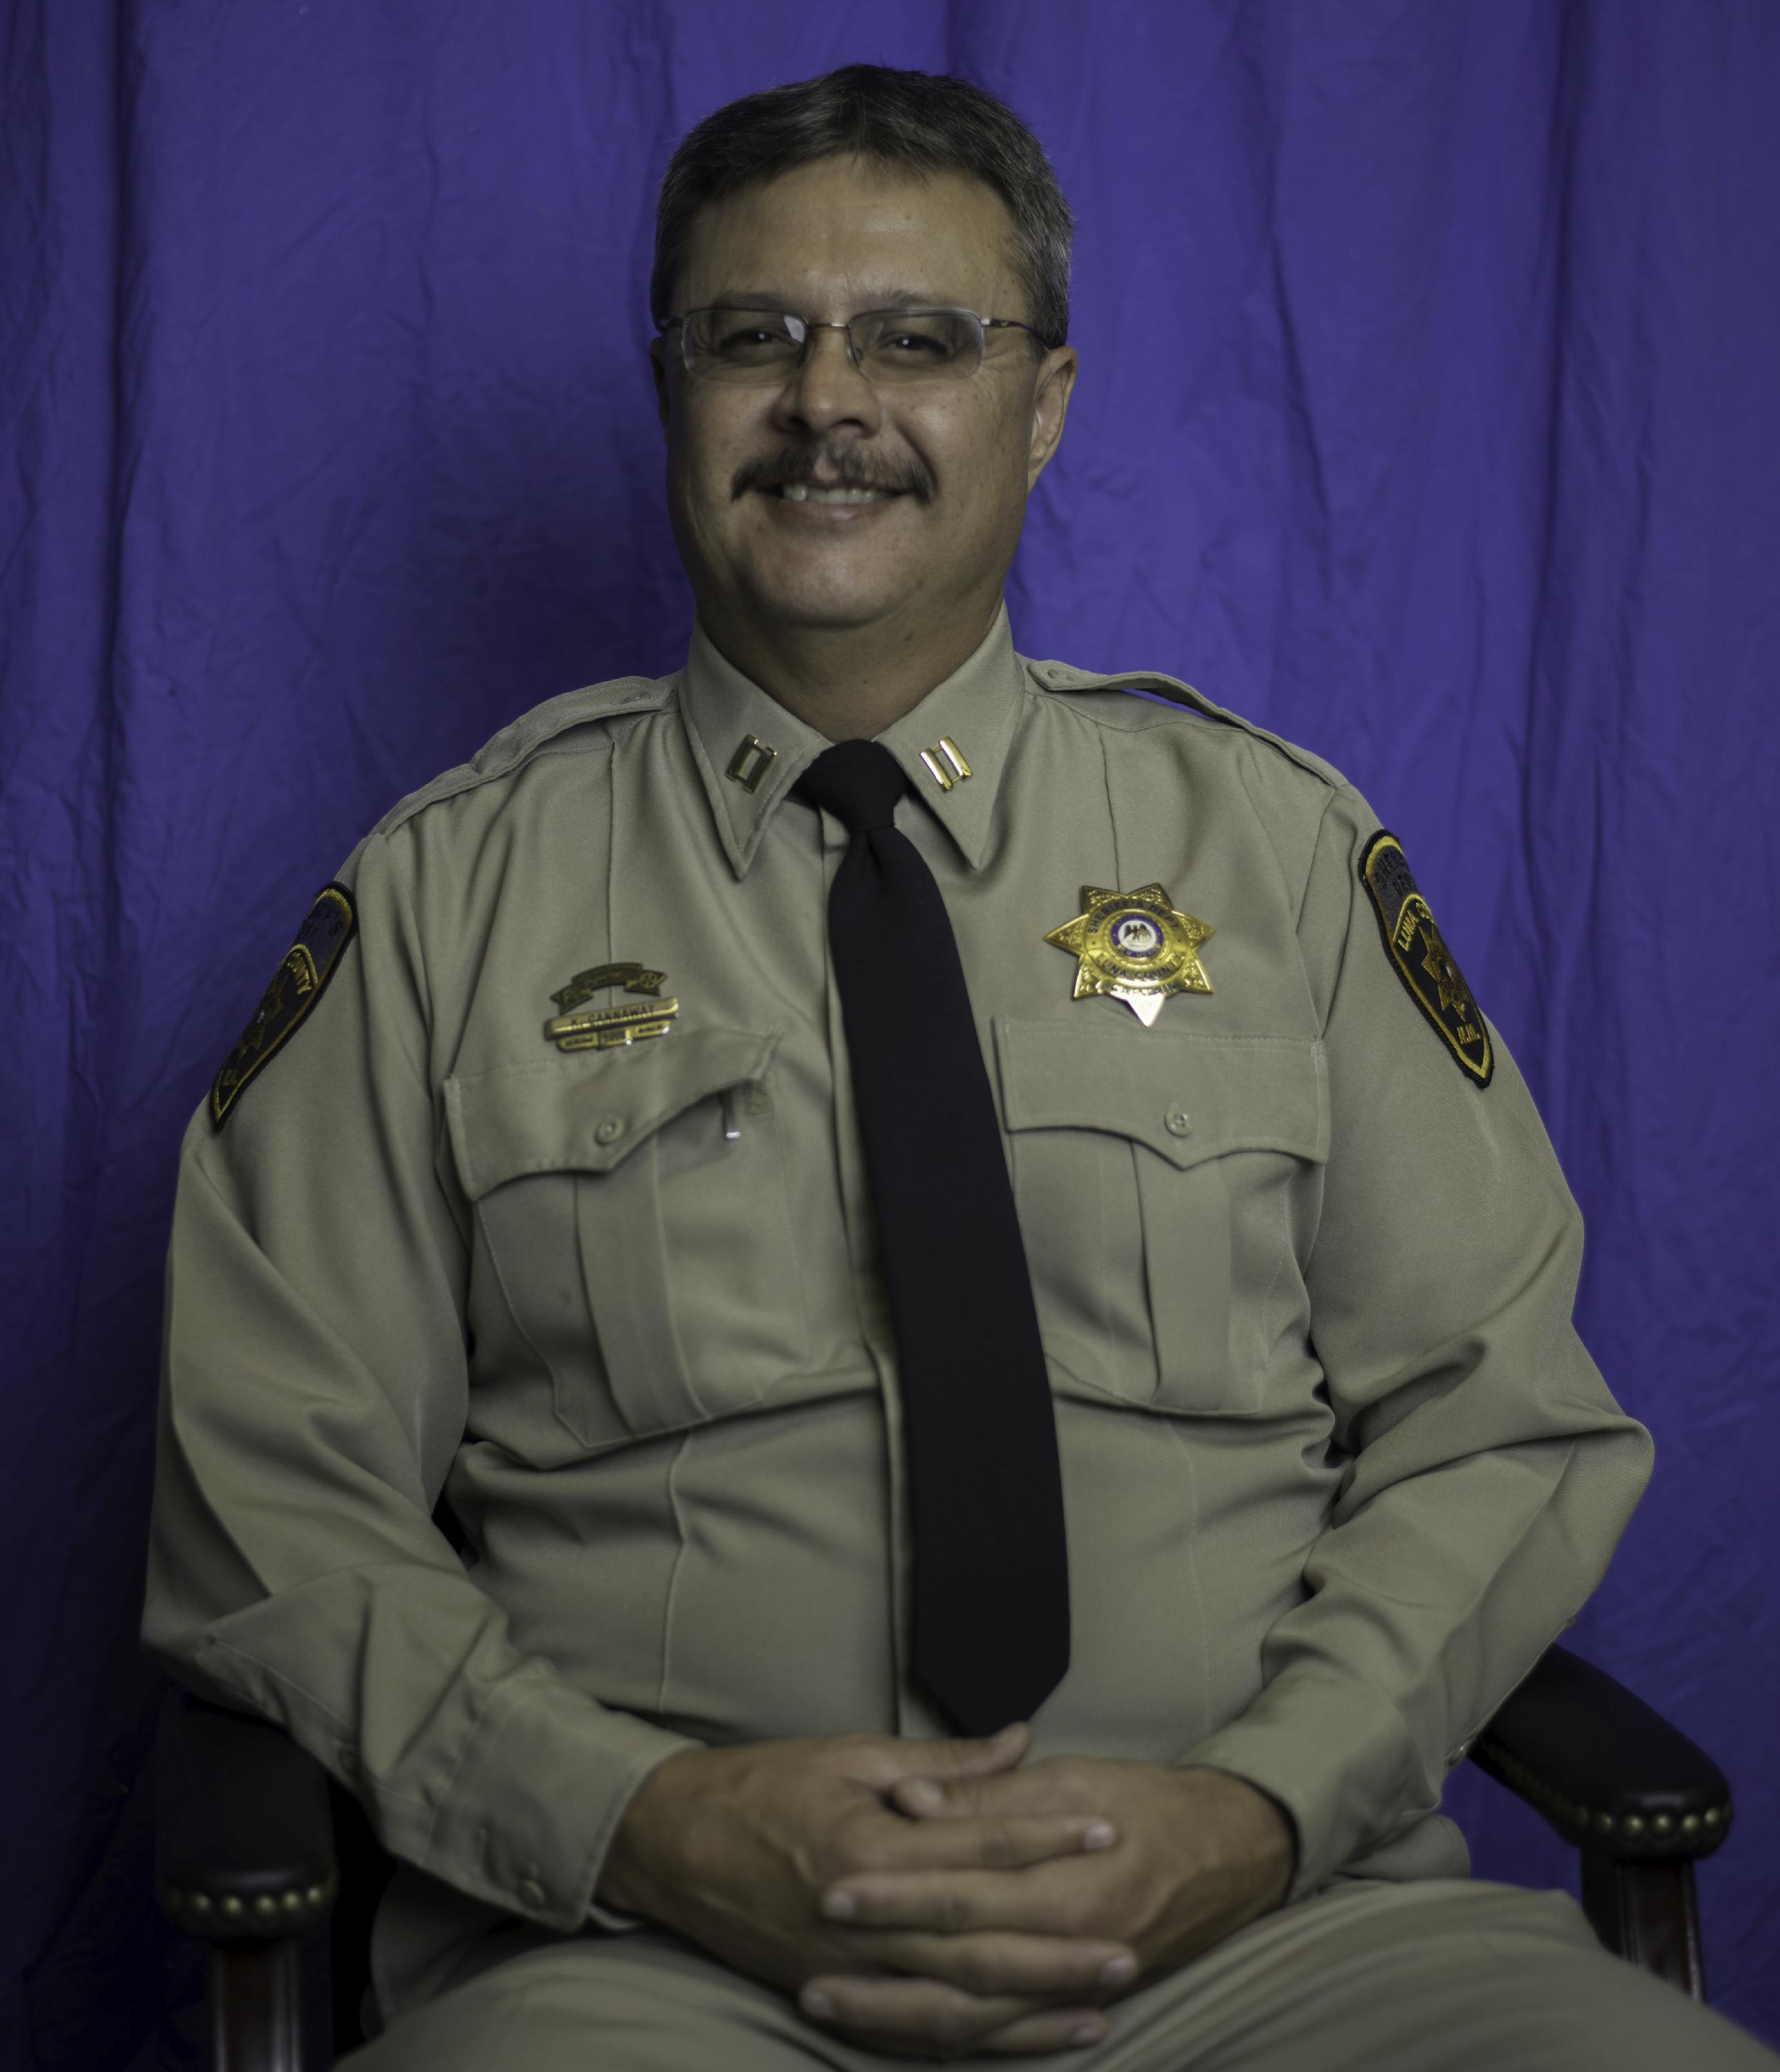 New mexico luna county columbus - Mission Statement It Is The Mission Of The Luna County Sheriff S Department To Provide The Highest Quality Law Enforcement Protection To All Citizens Of